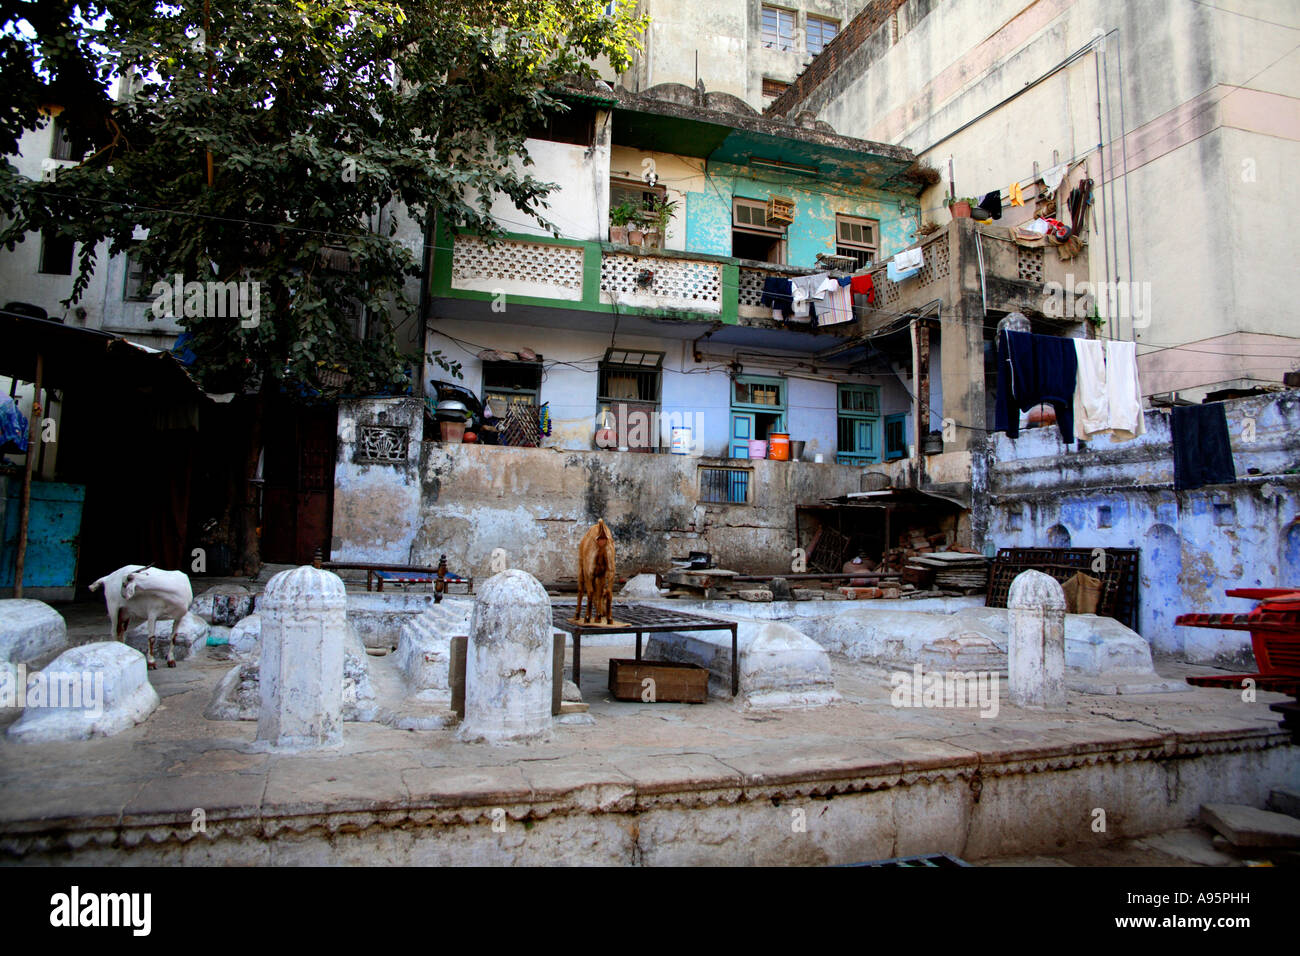 Houses in the old city of Ahmedabad, Gujarat, India - Stock Image